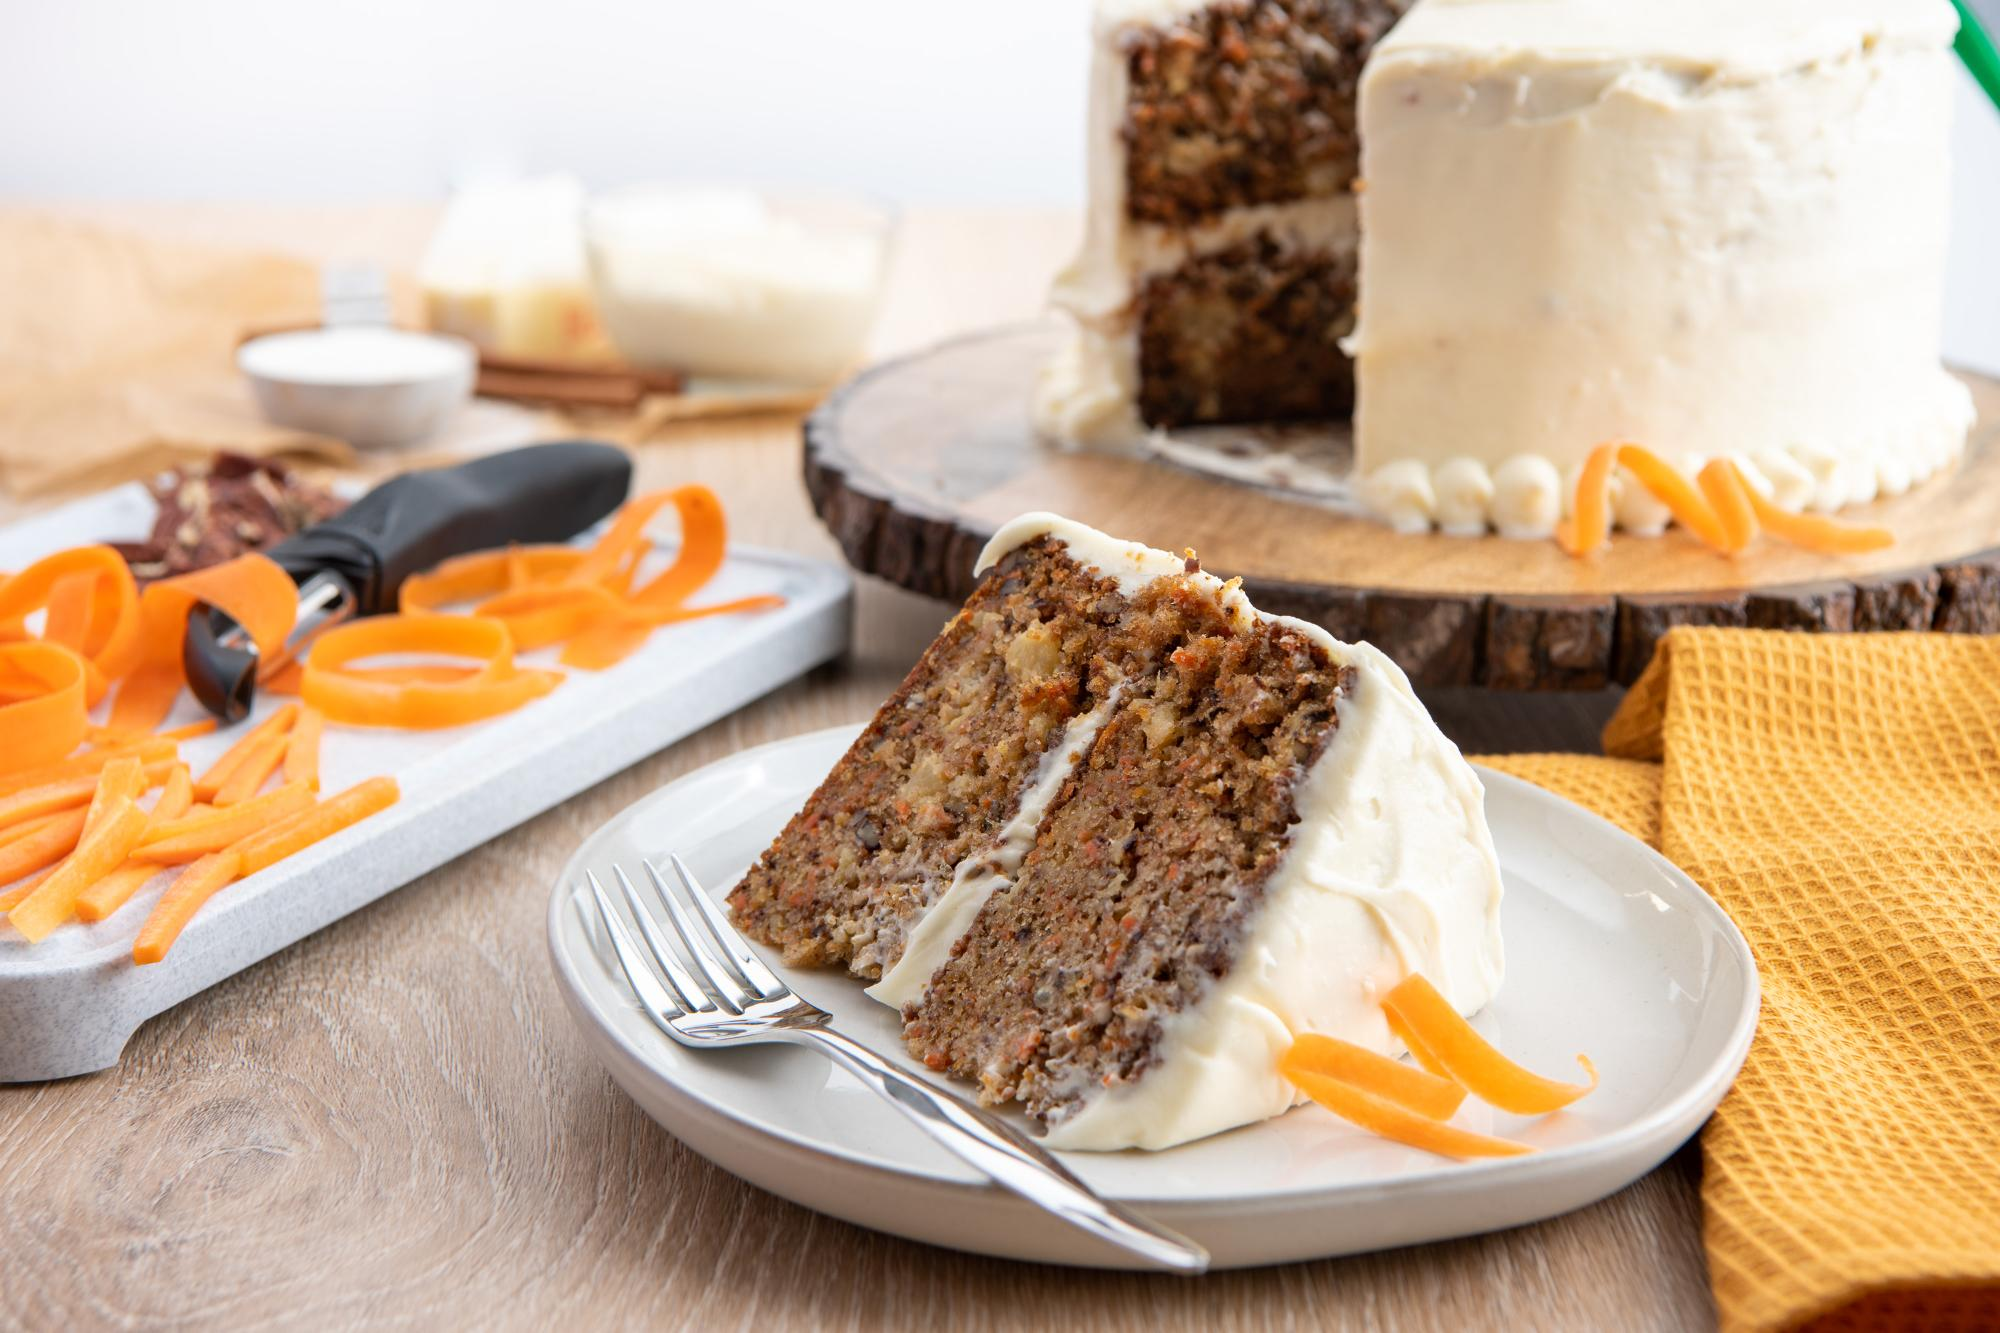 Gwin's Lodge Amazing Carrot Cake with Pineapple